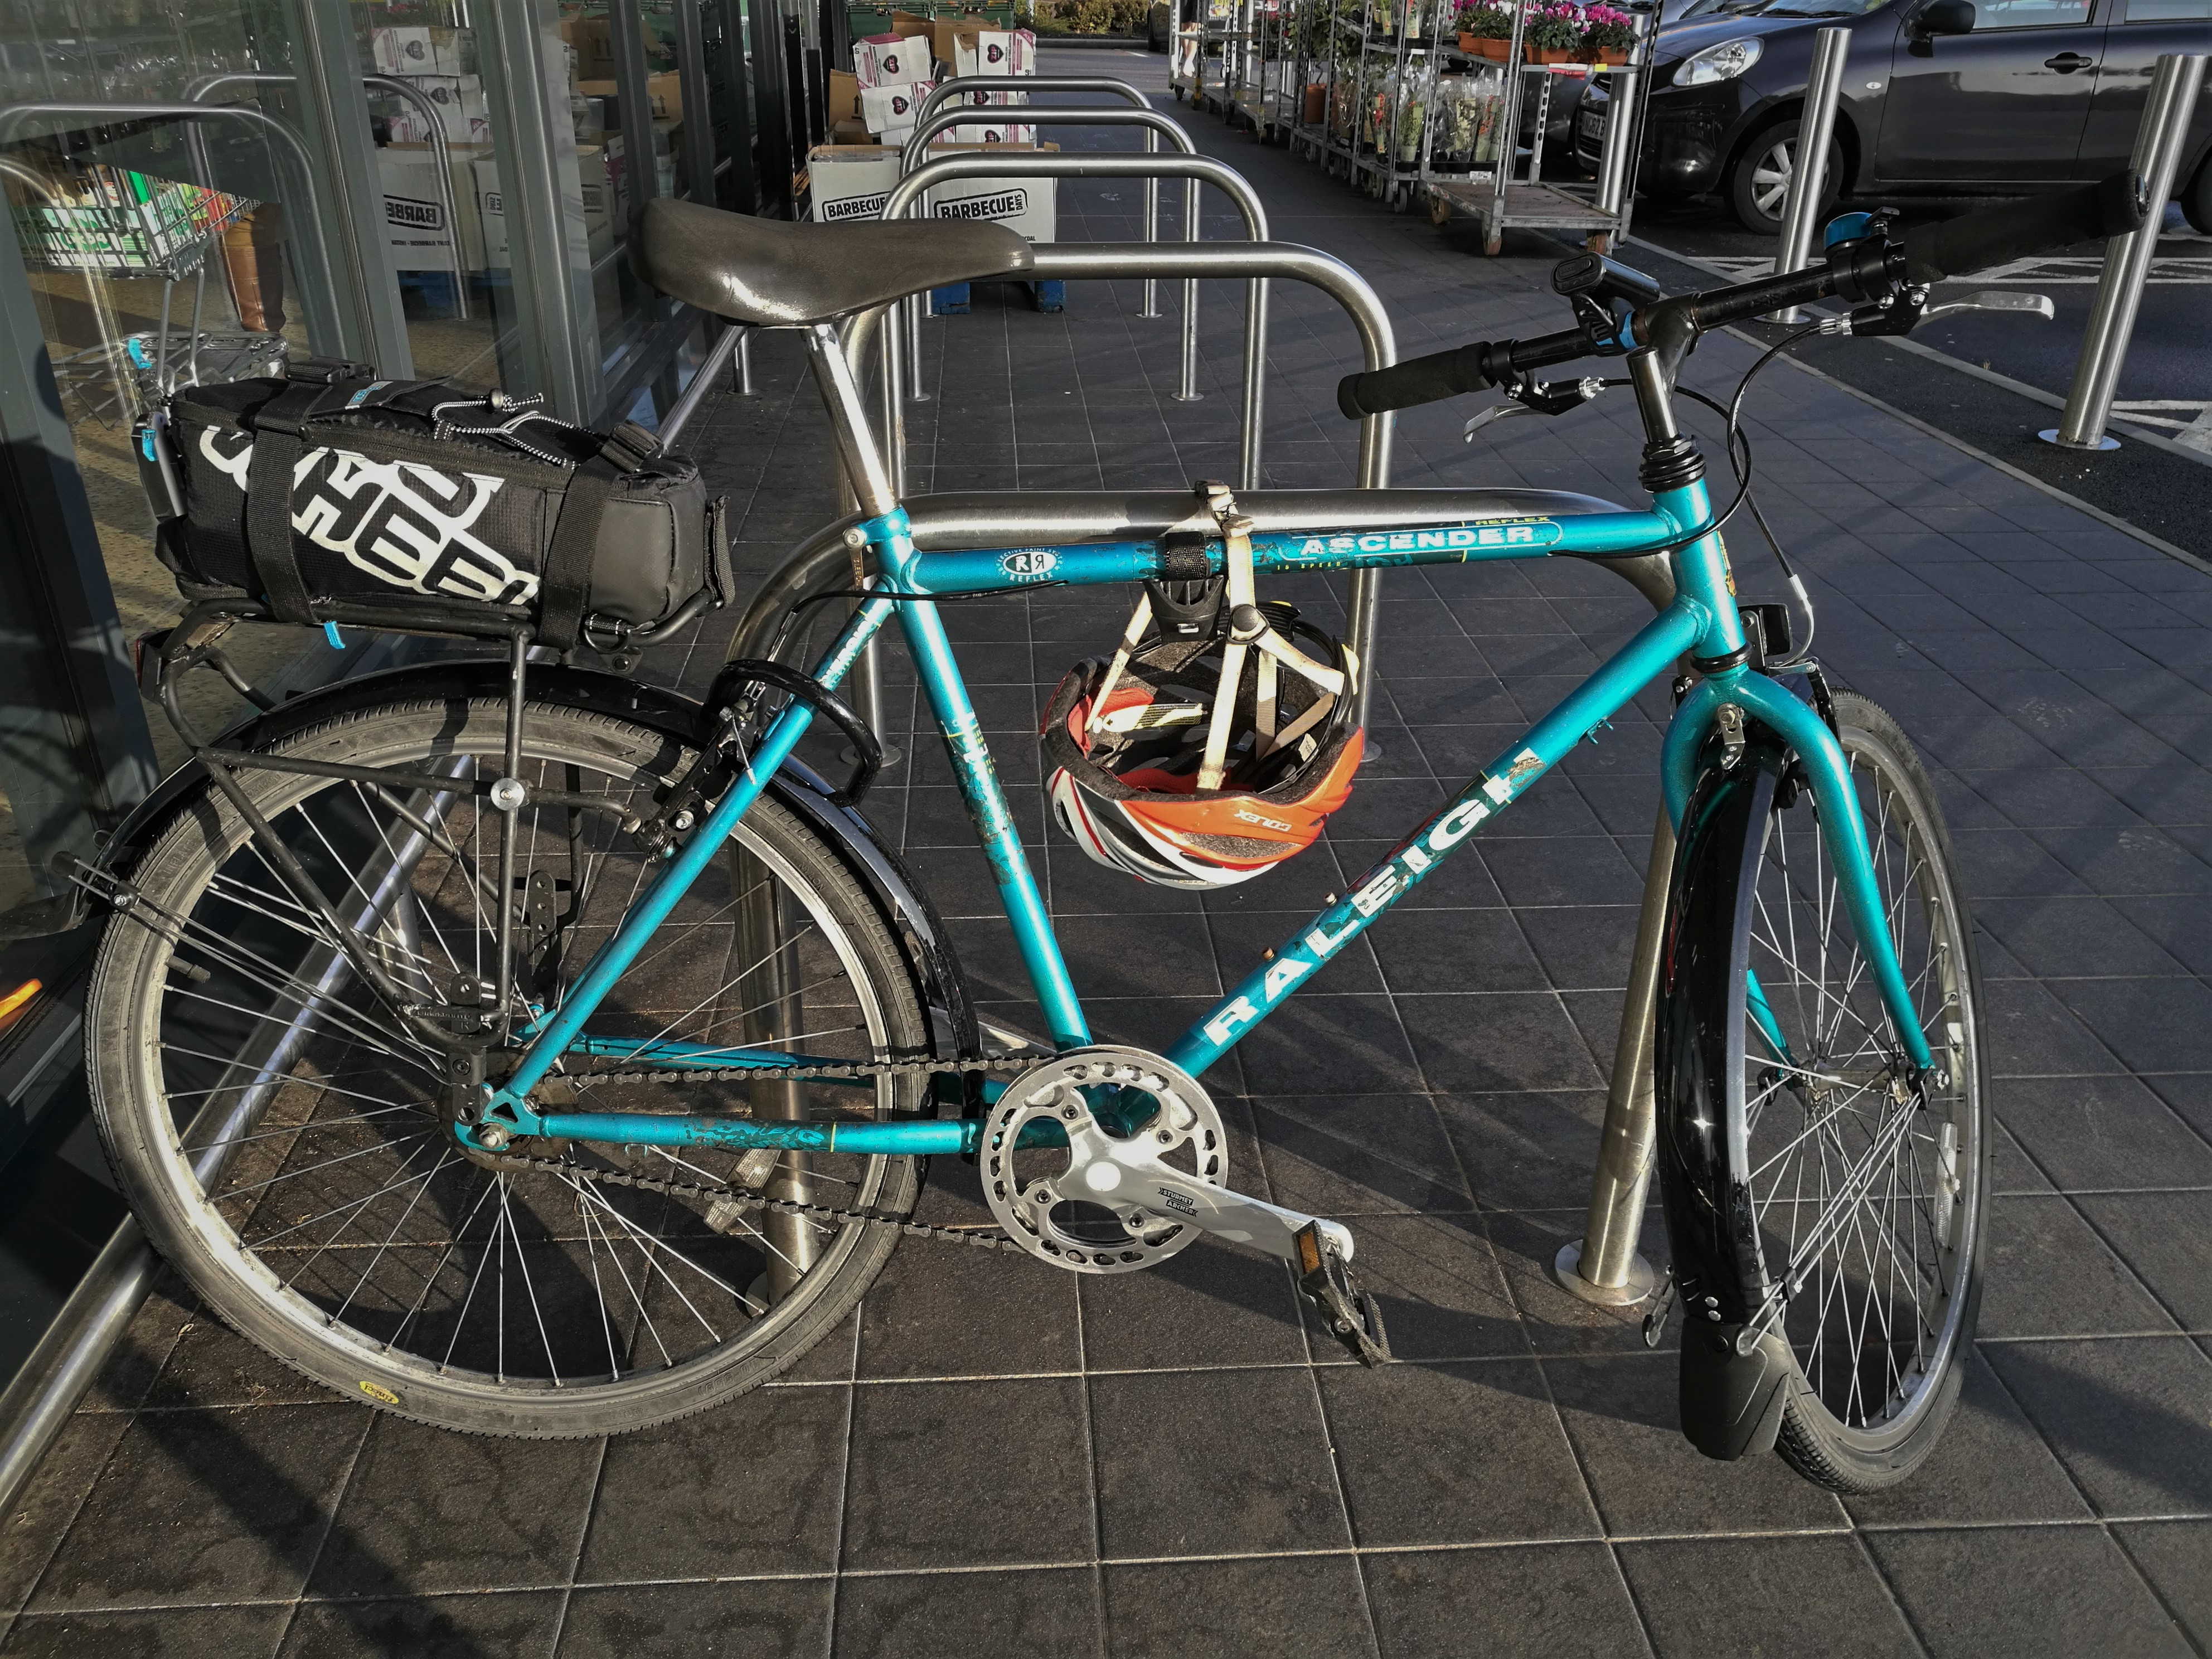 Raleigh Ascender with mudguards